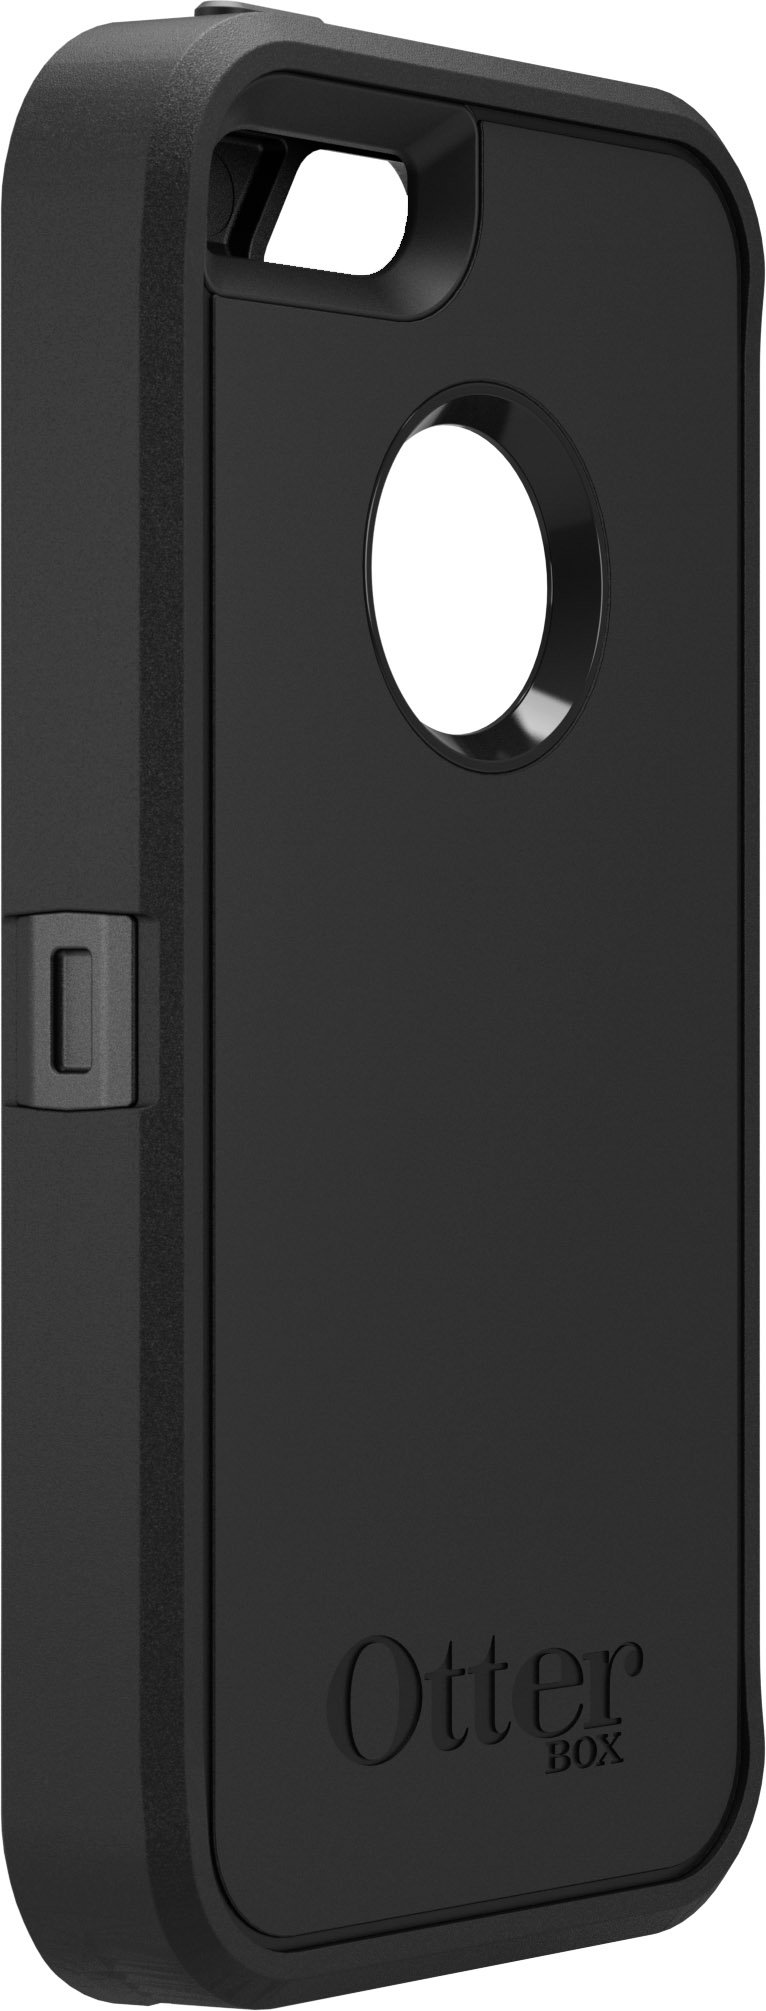 OtterBox Defender Series Case for iPhone 5/5s/SE - Black - Frustration Free Packaging by OtterBox (Image #13)